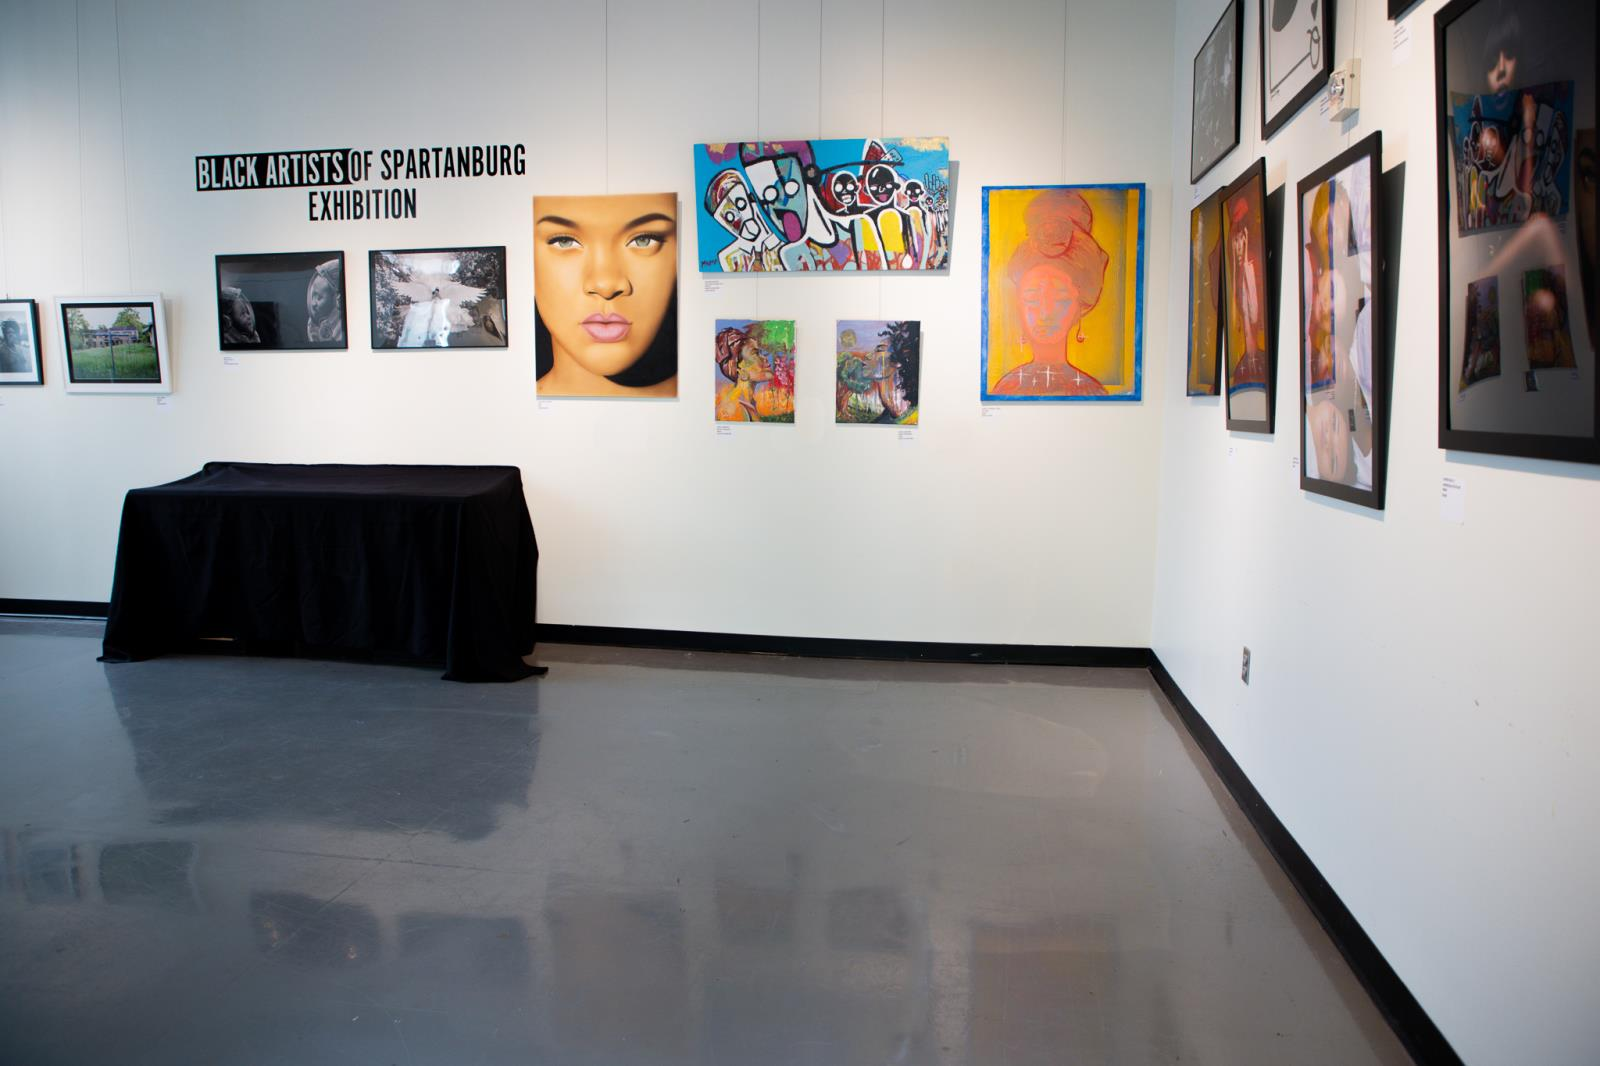 Black_Artists_of_Spartanburg_Exhibition.jpg